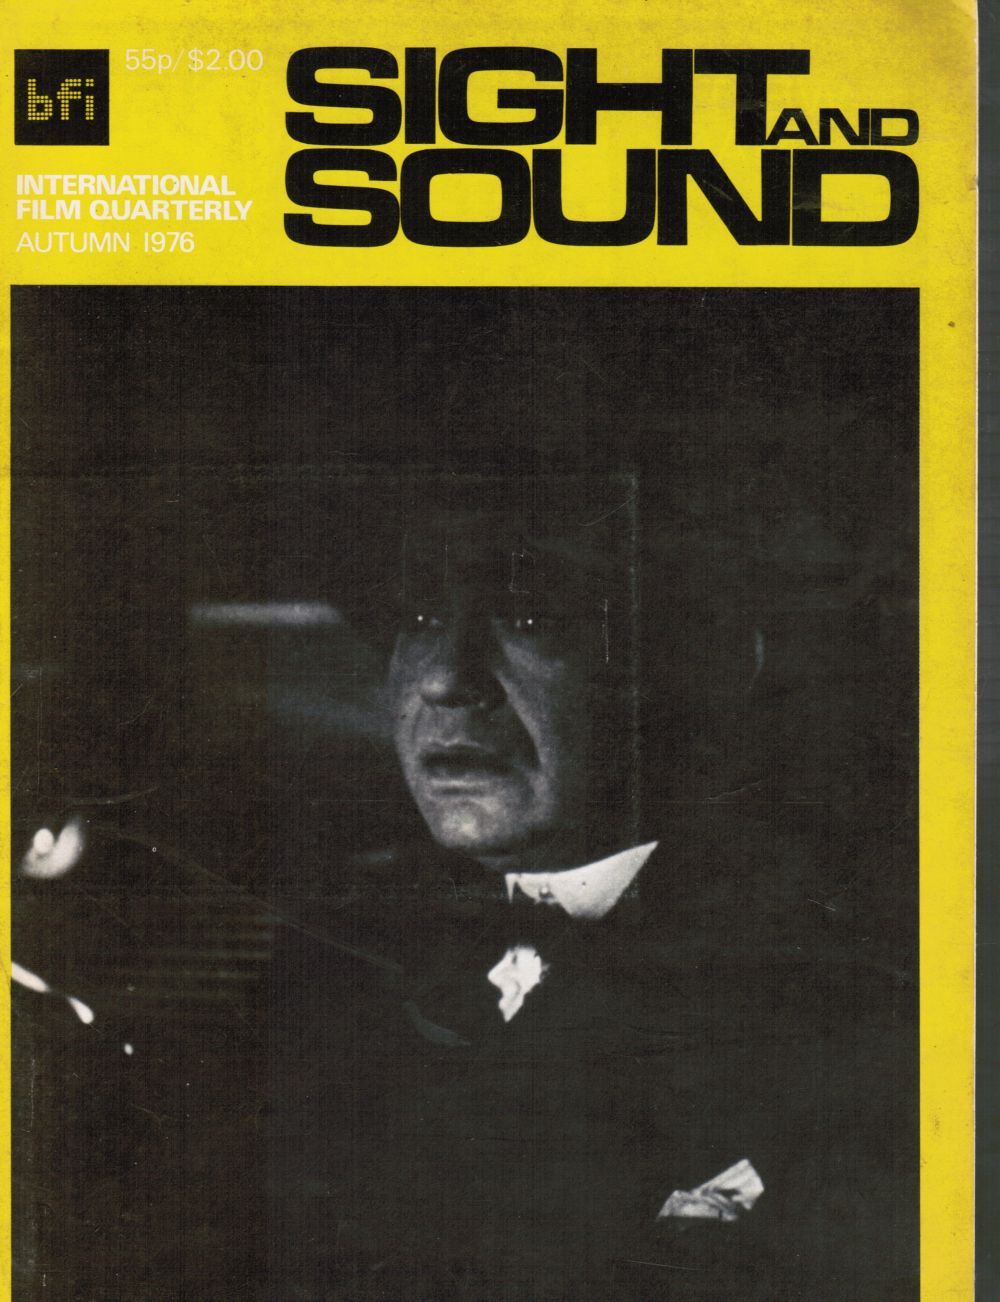 Image for Sight and Sound International Film Quarterly - Vol 45, No 4, Autumn 1976 'The Woman in the Window' (Cover)